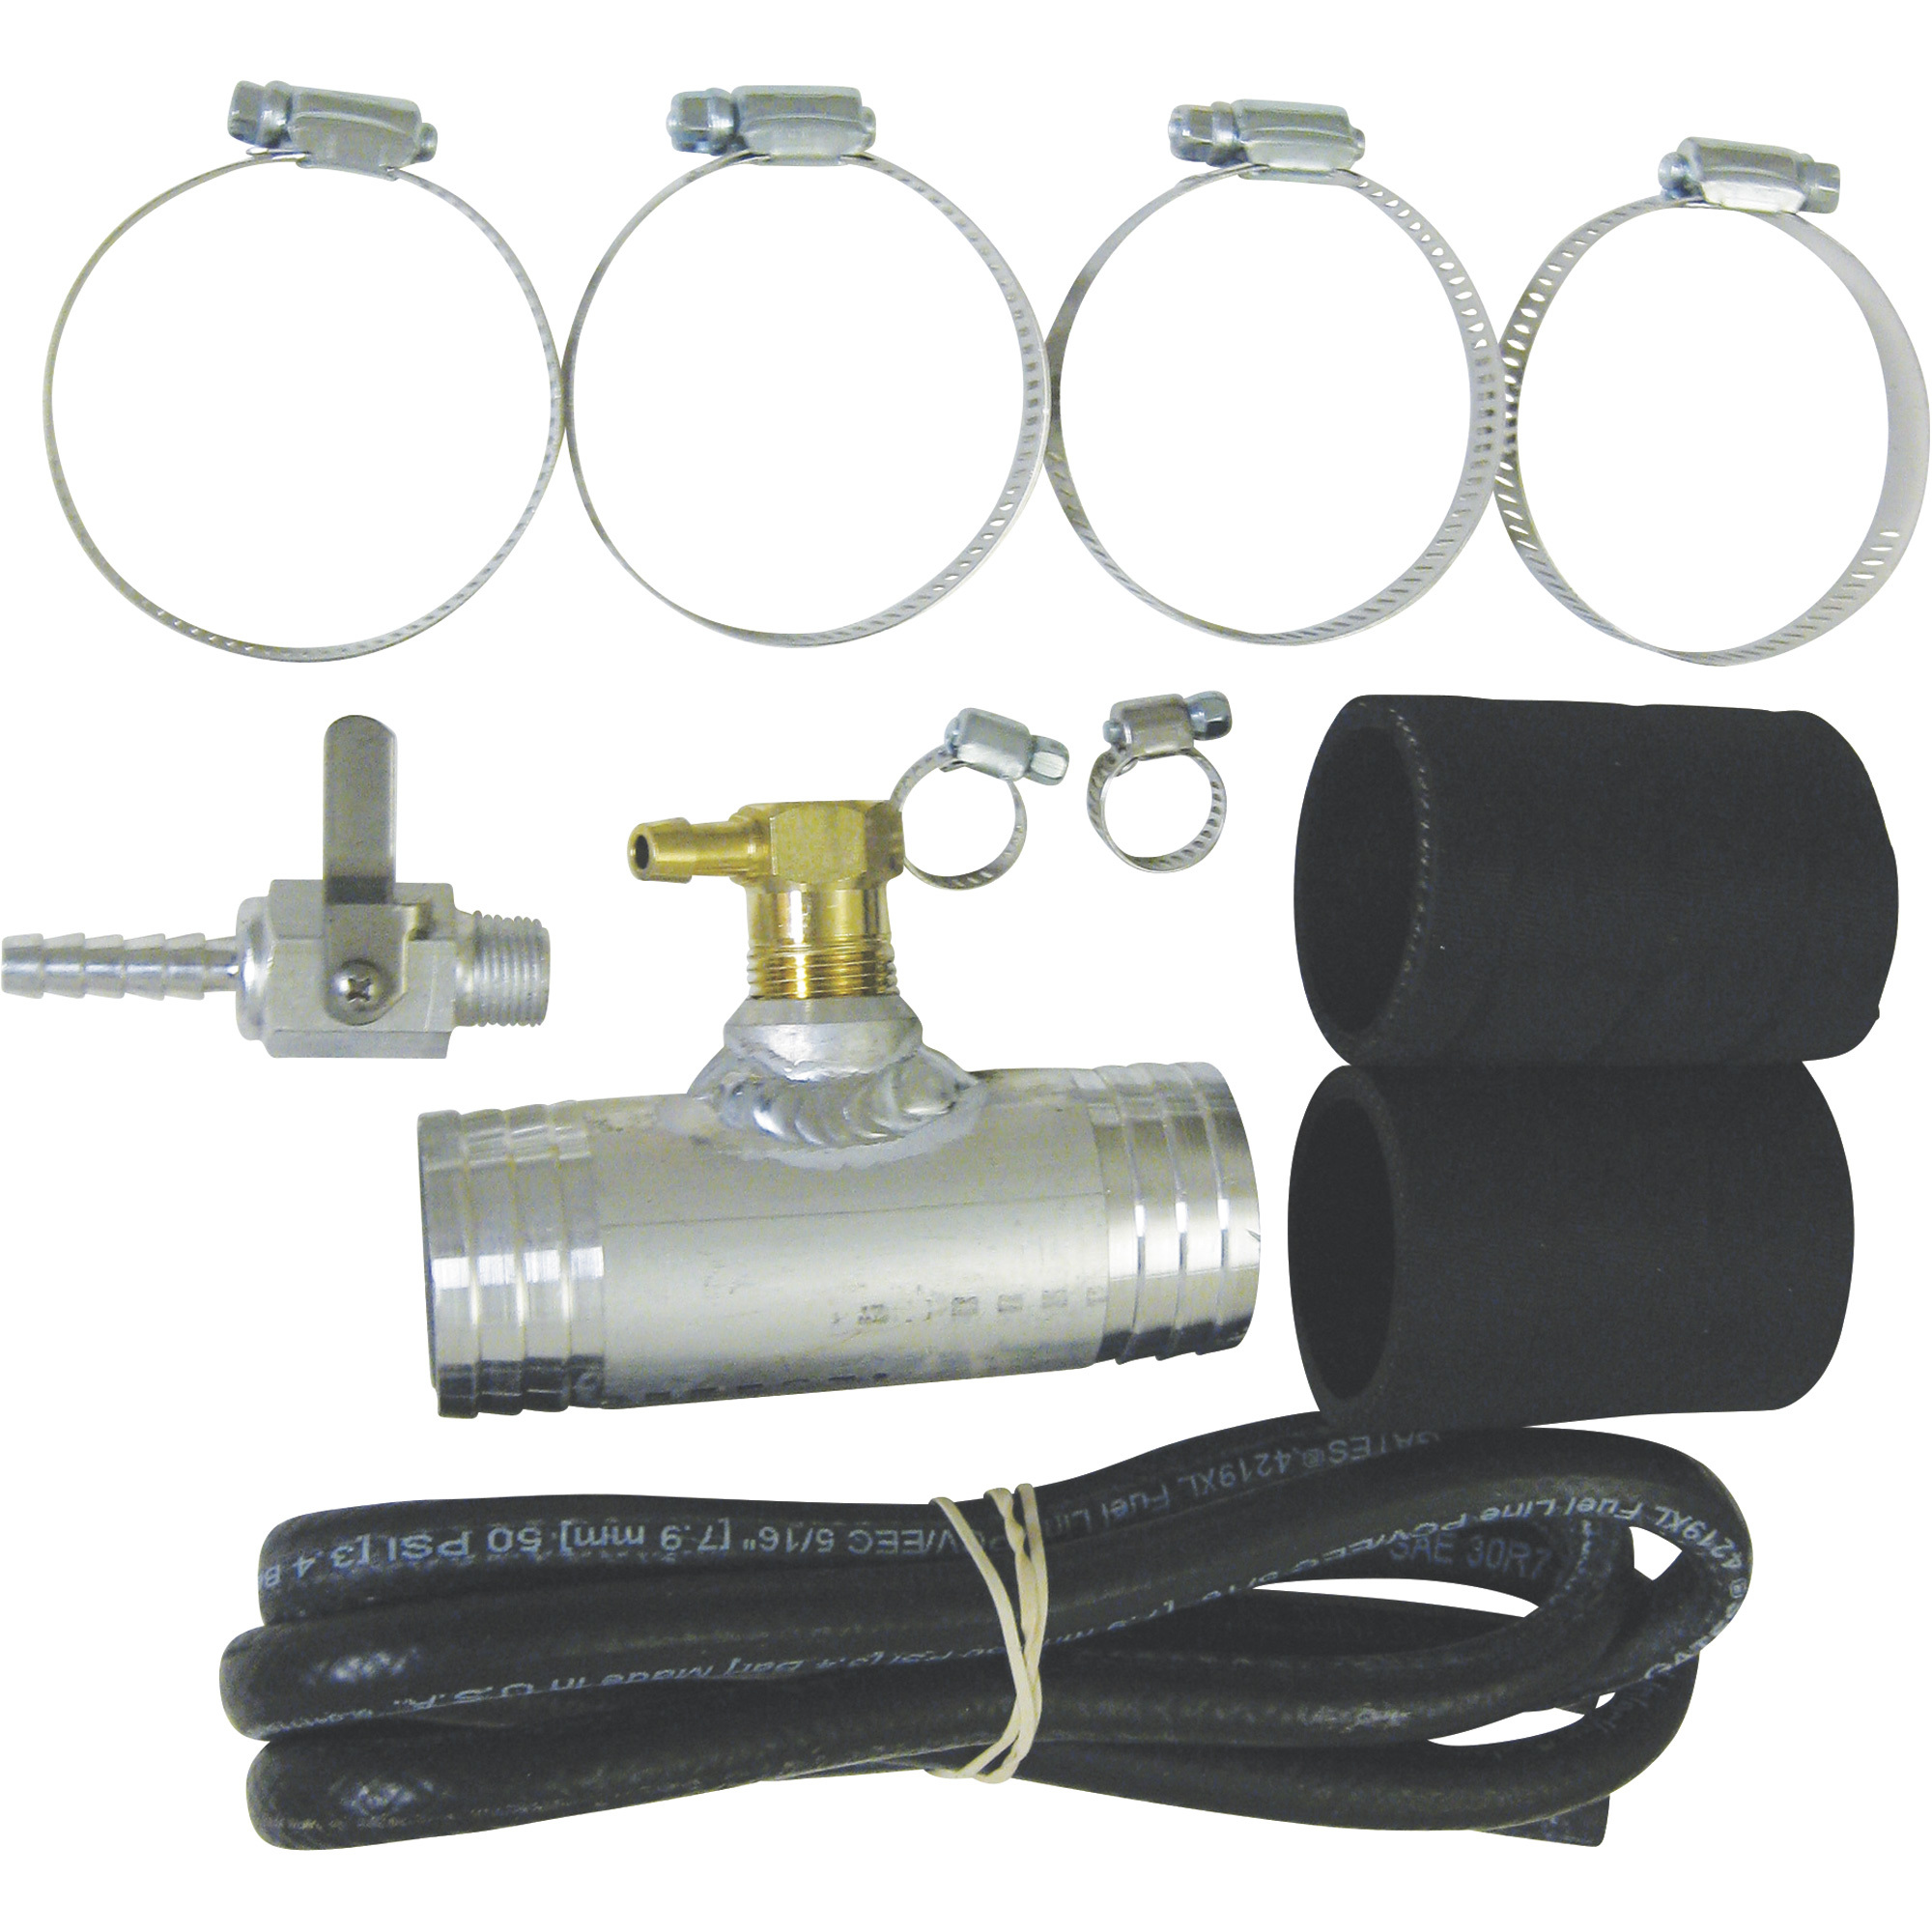 RDS Diesel Installation Kit for Auxiliary Diesel Fuel Tank — Fits 2013-Current Dodge Diesel ...